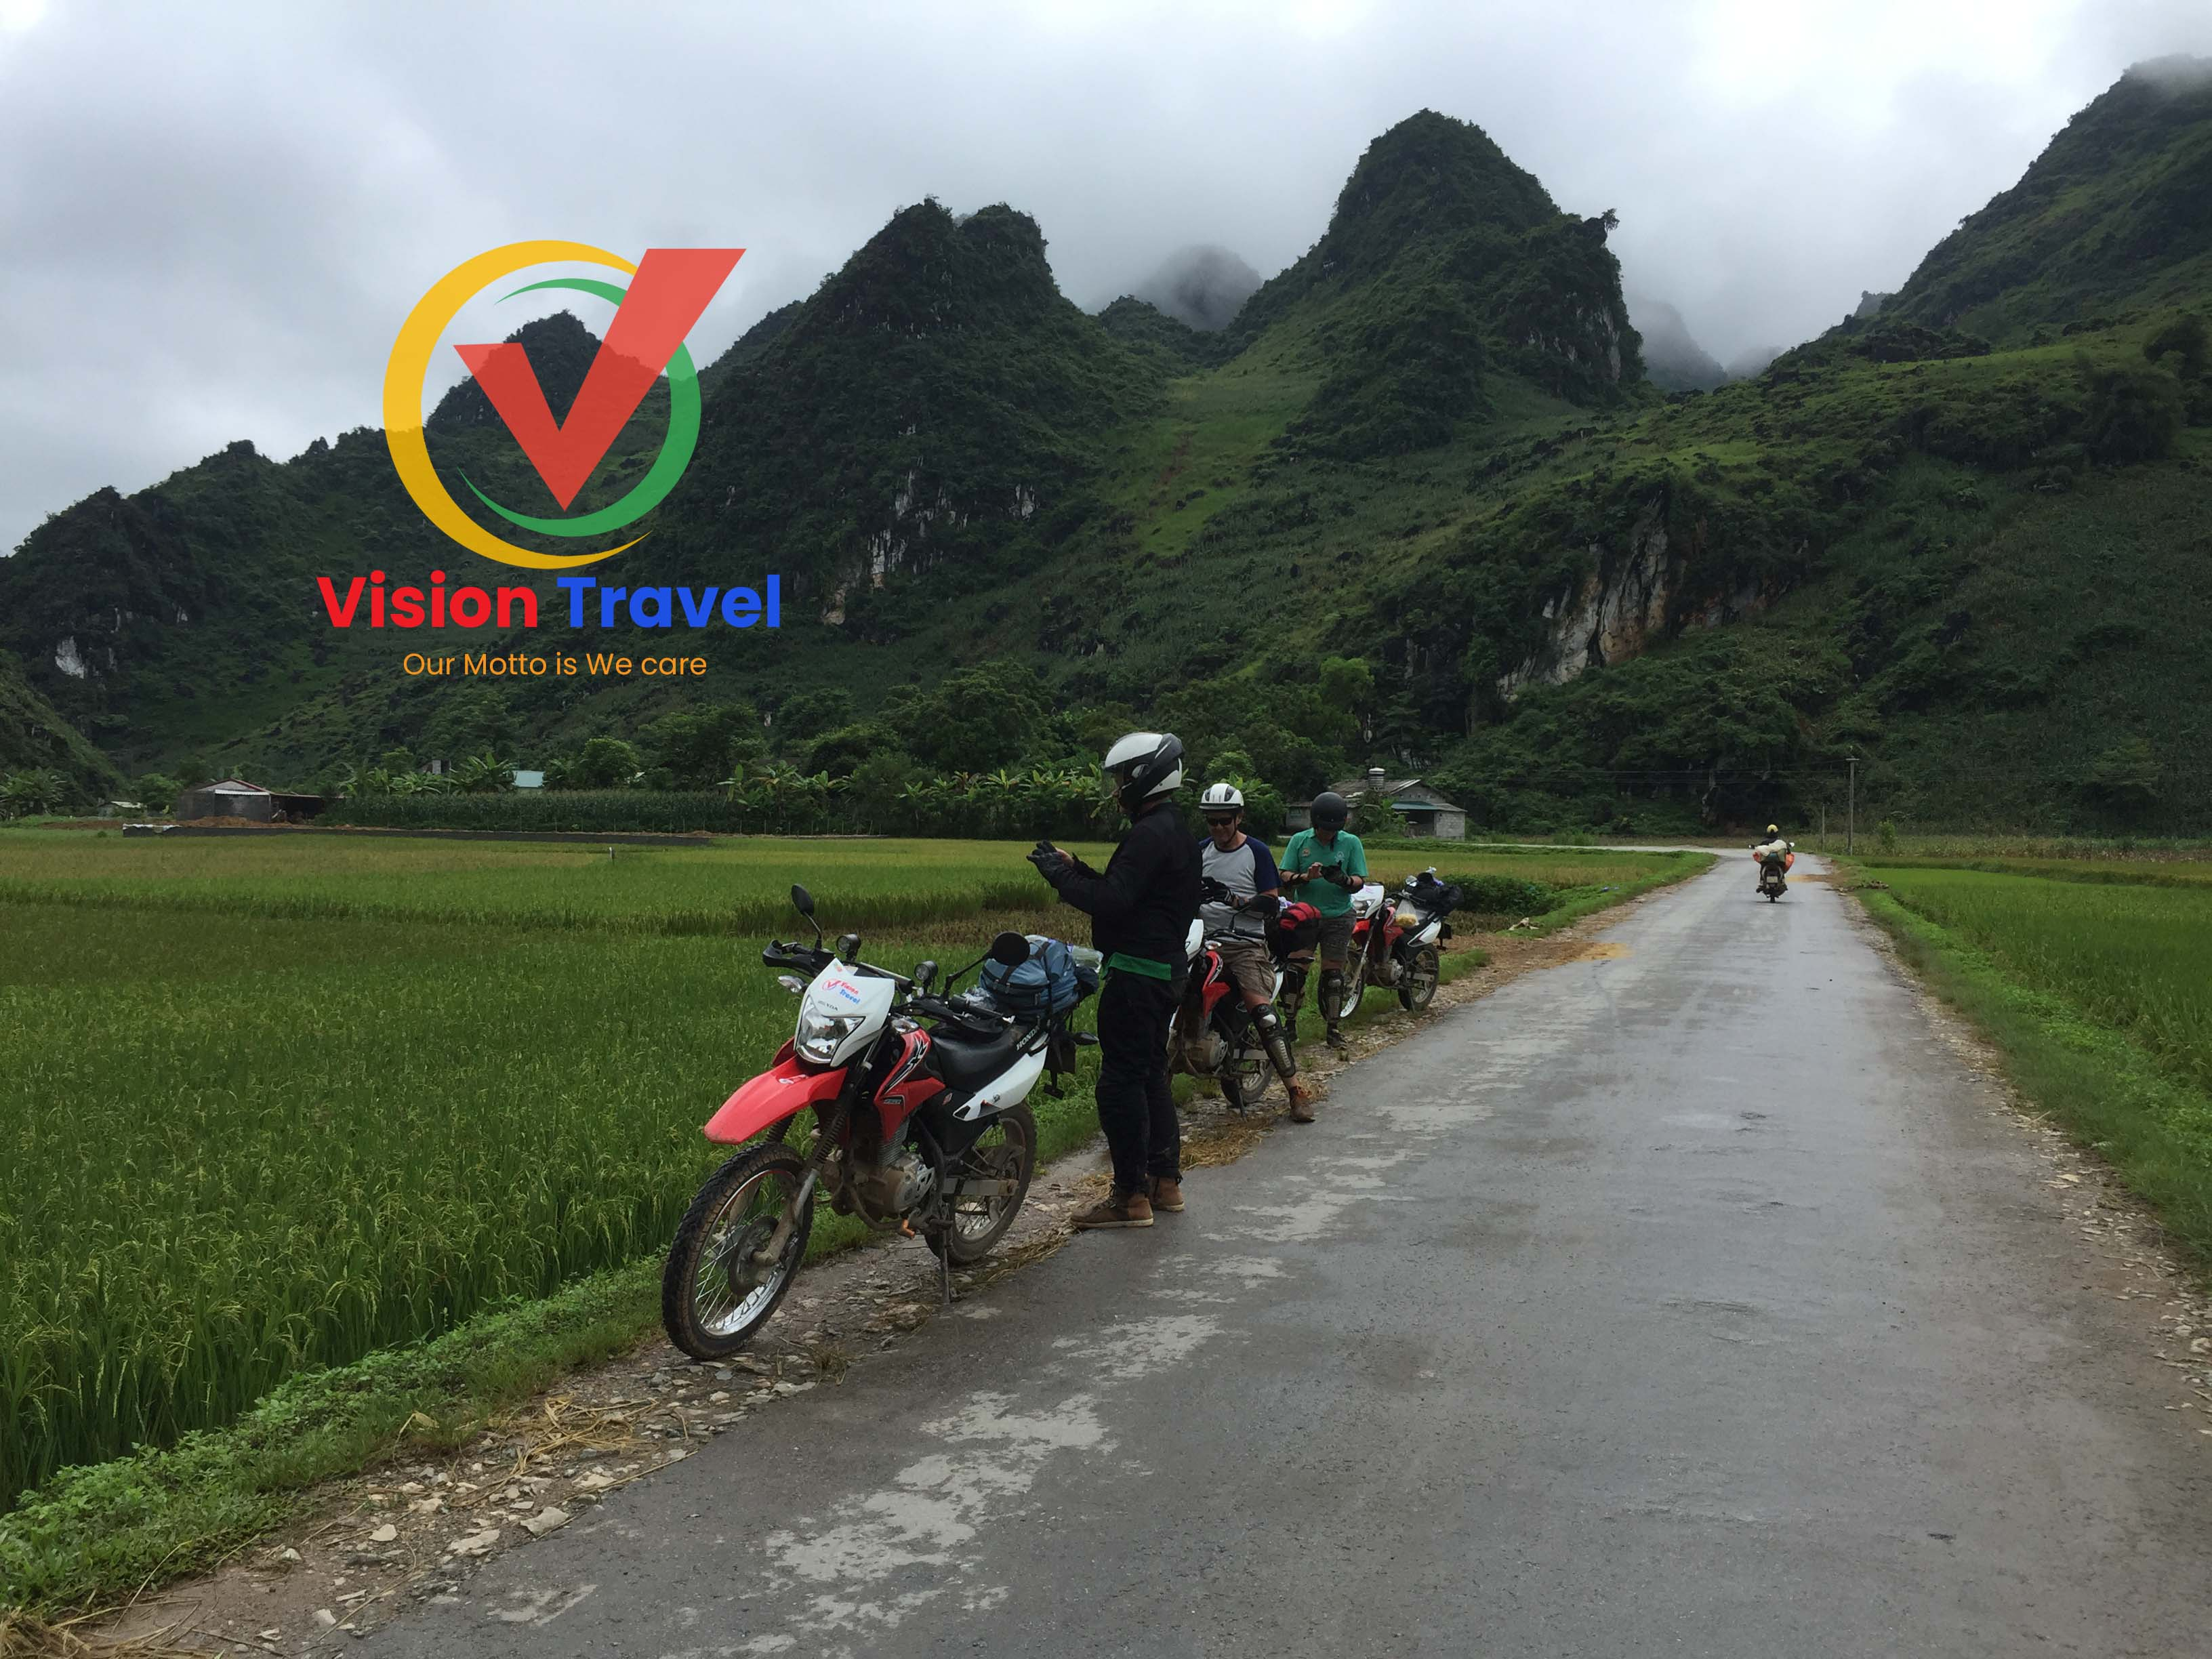 3-day Motorbike tour: Highlights of Ha Giang (Ha Giang Loop)